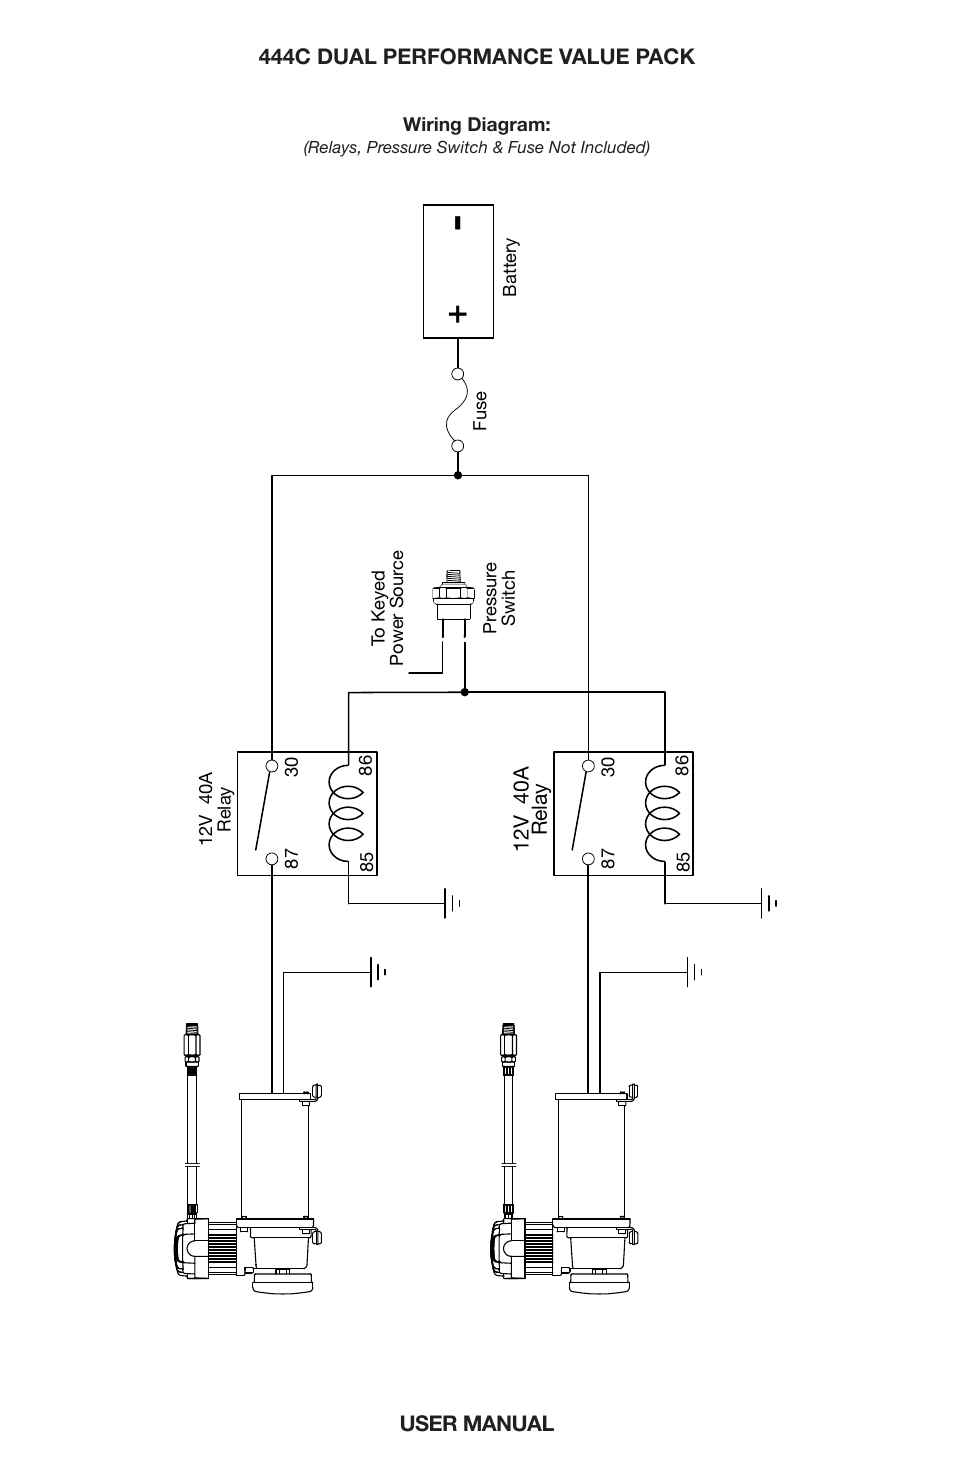 dual u201cc u201d model compressor wiring diagram viair 444c dual user rh manualsdir com viair 380c wiring diagram viair pressure switch wiring diagram